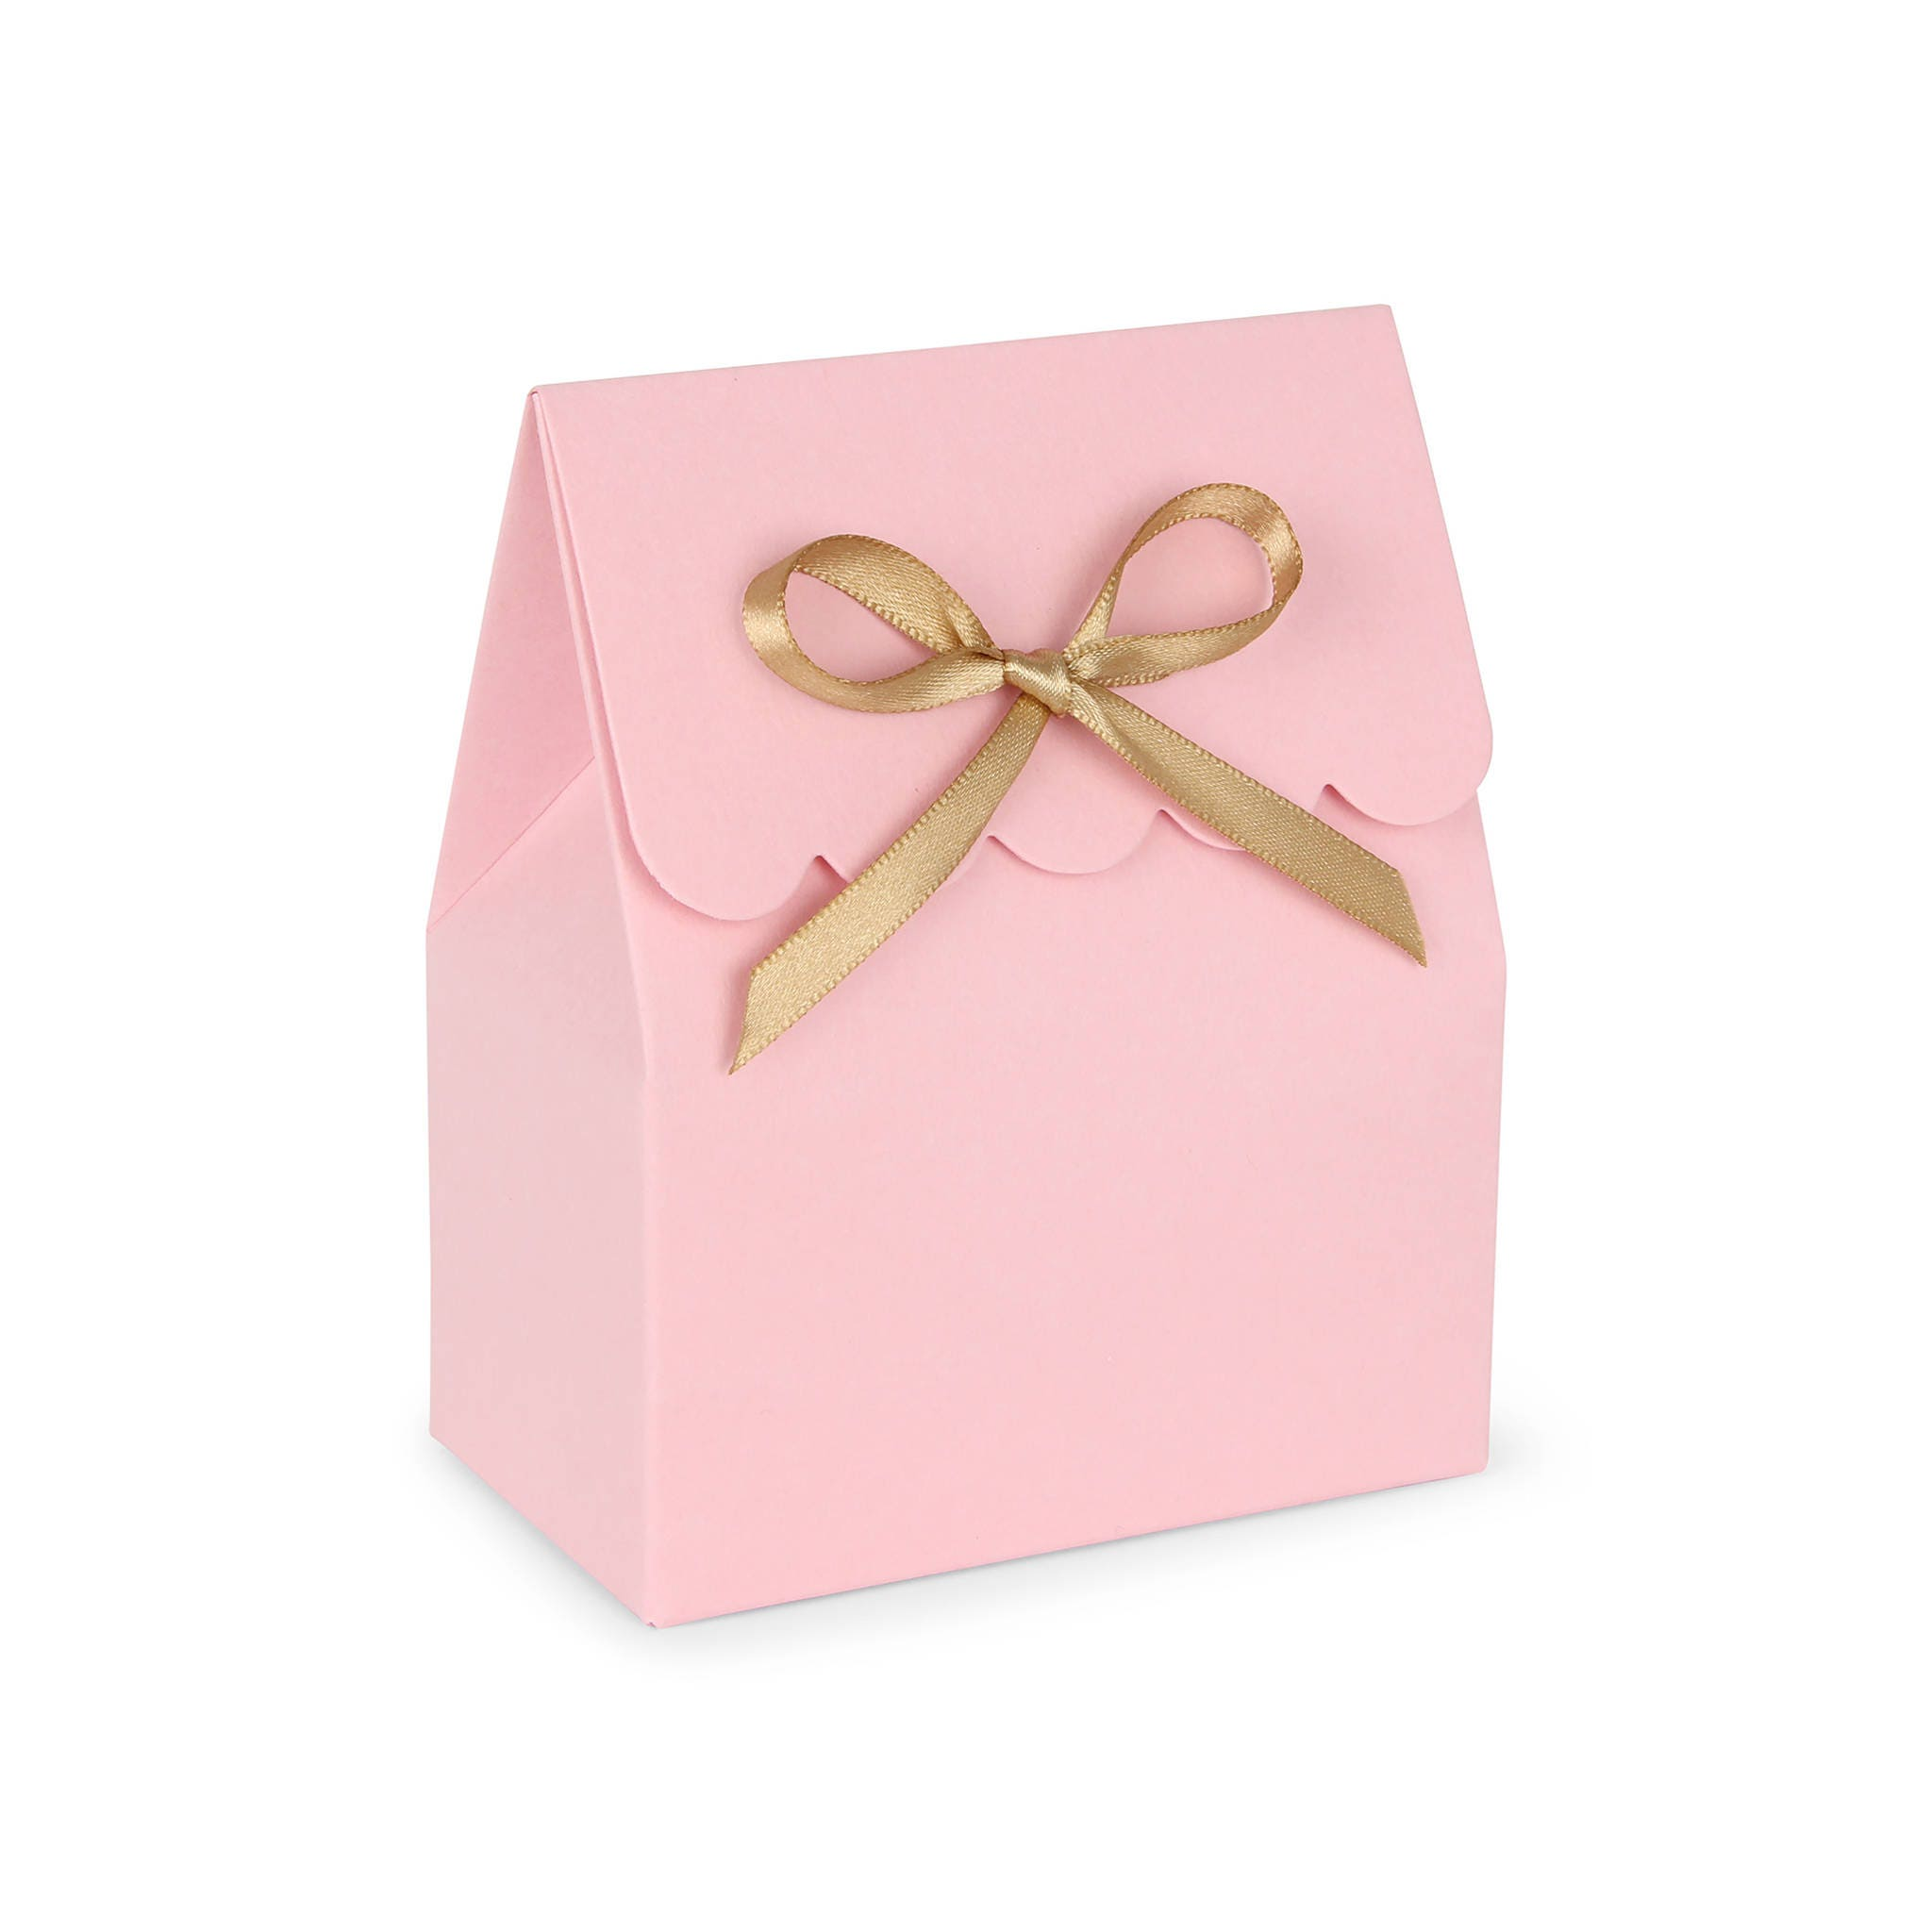 Favor boxes Pink and gold favor boxes Favor boxes pink Pink